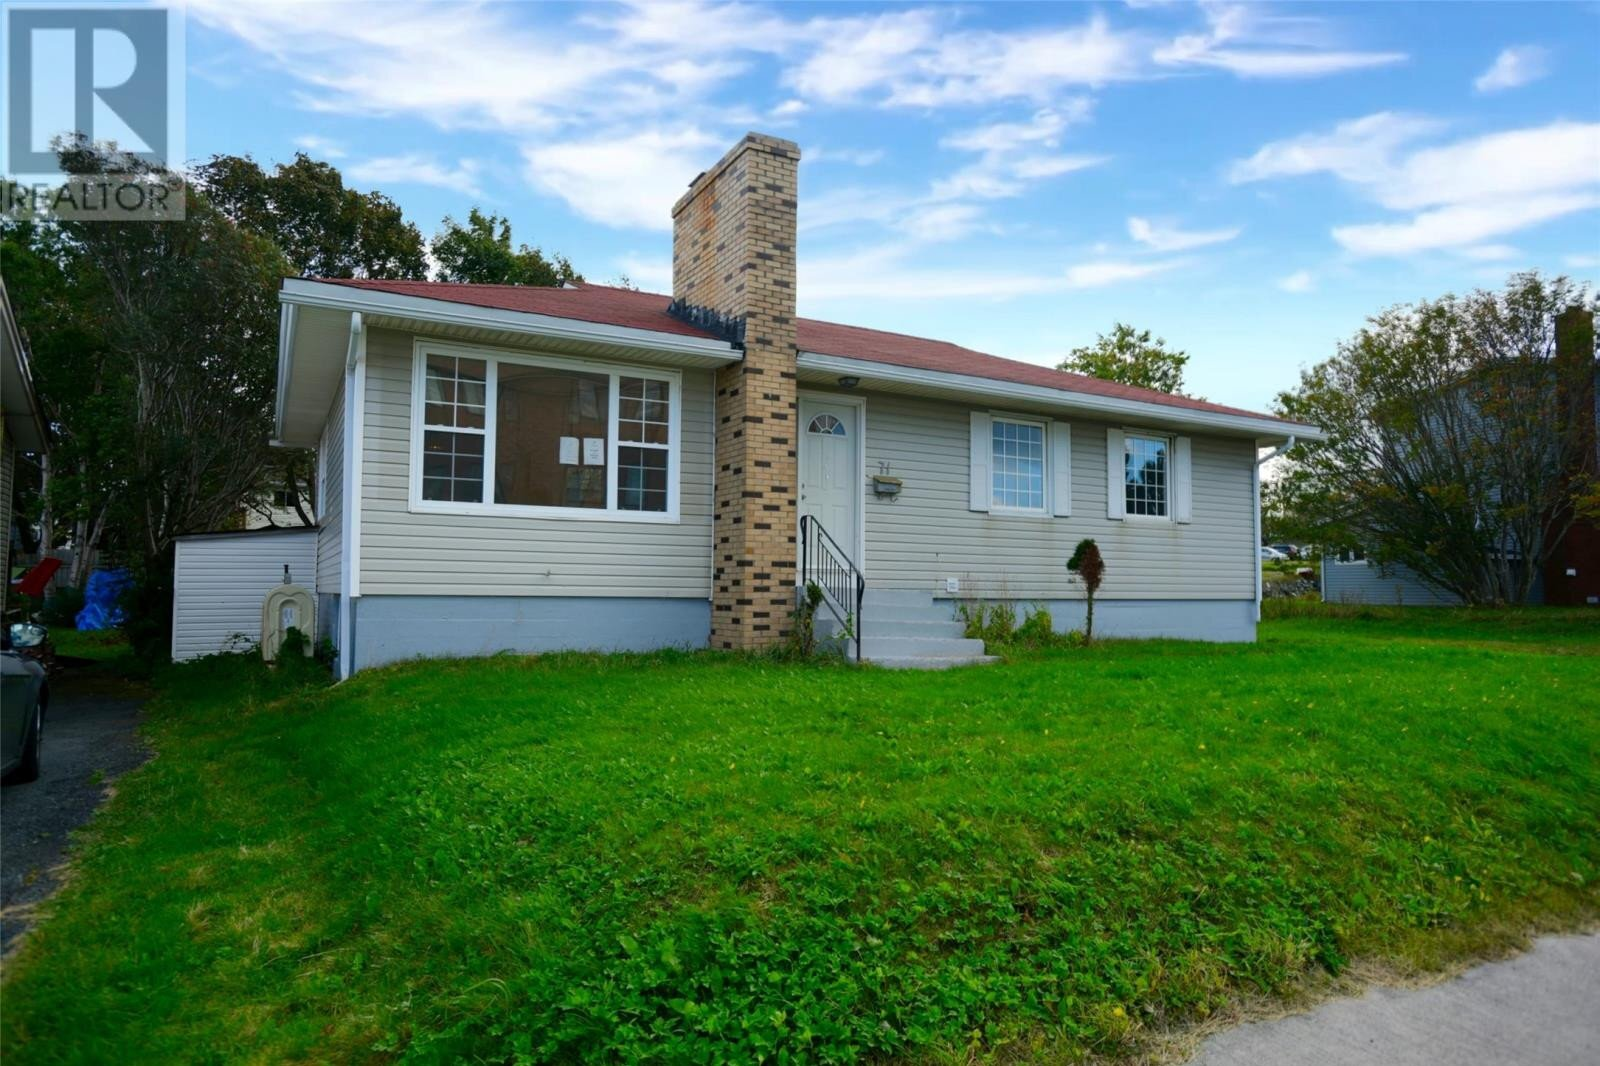 House for sale at 71 Wishingwell Rd St. John's Newfoundland - MLS: 1221680